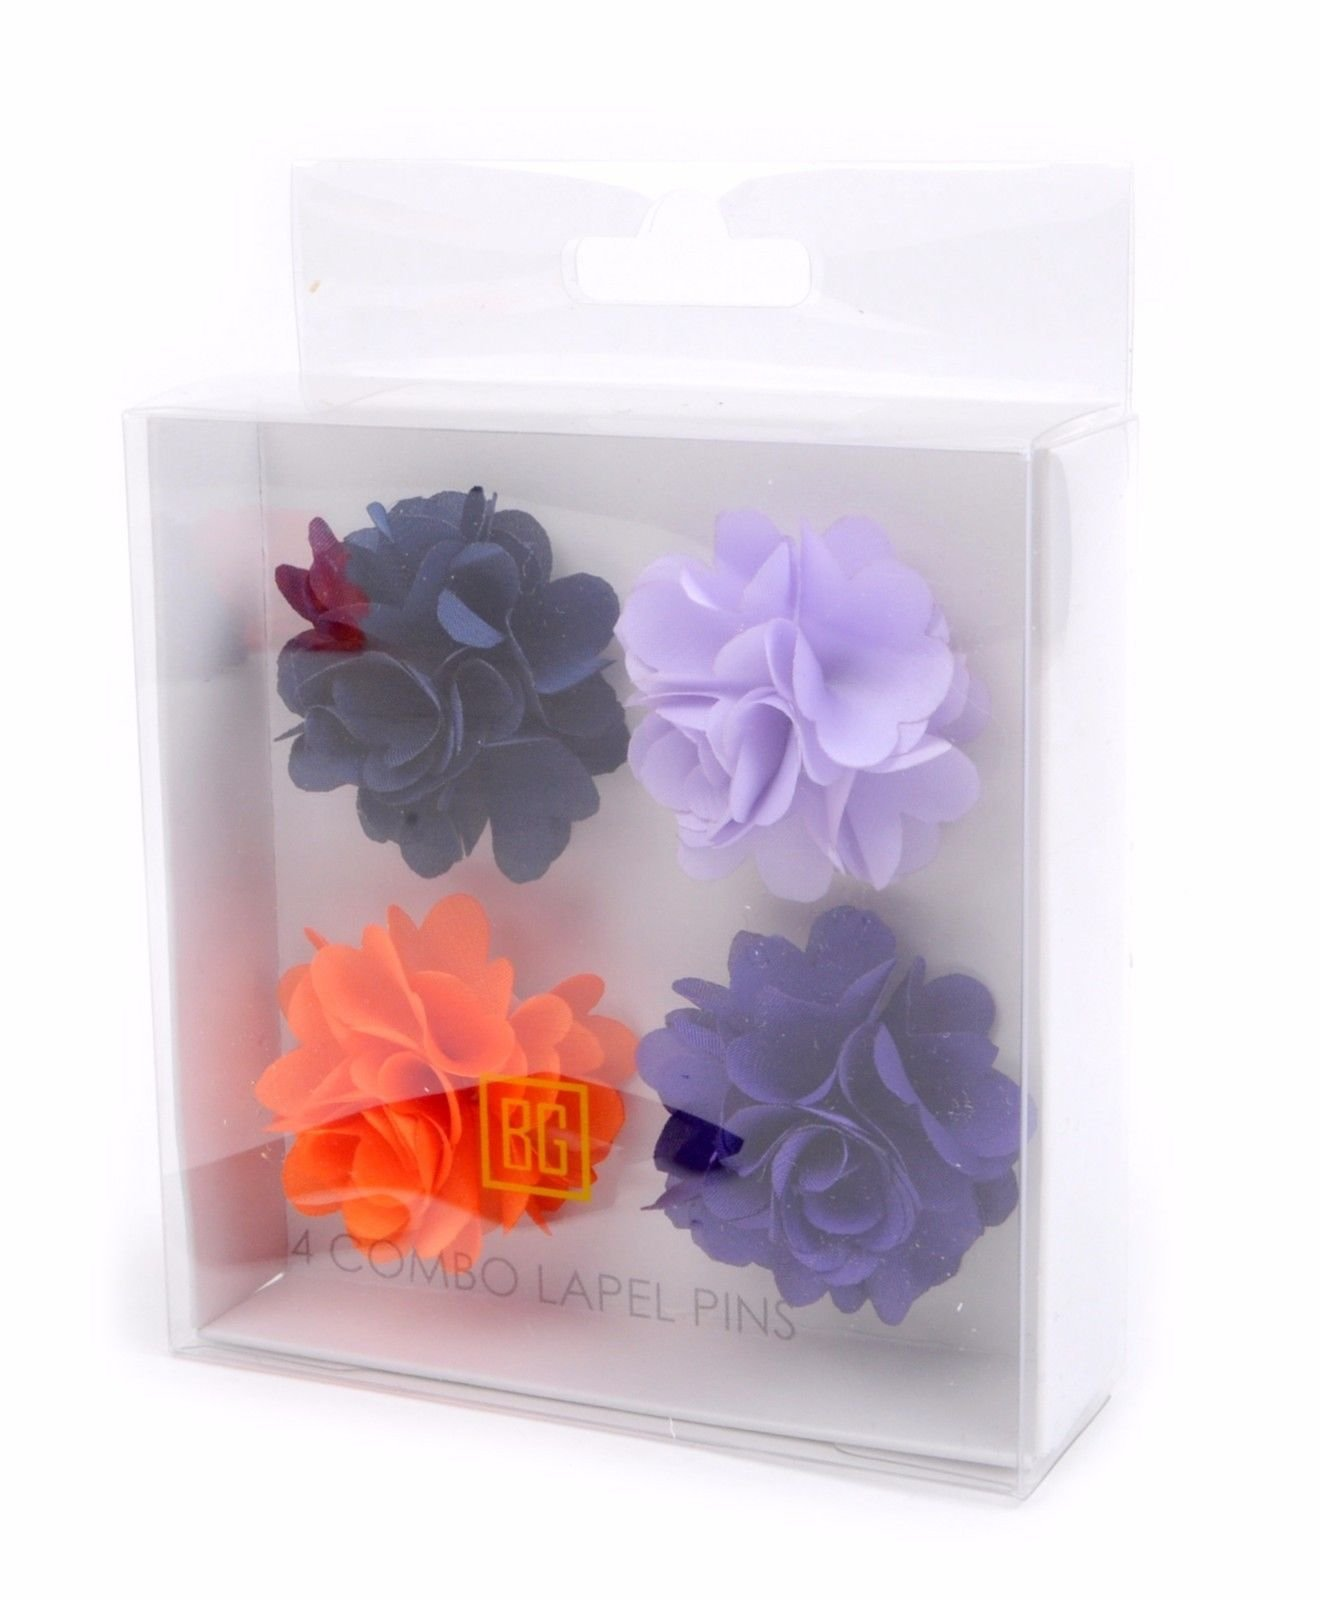 BG-Mini-Bouquet-Clutch-Back-Flower-Tuxedo-Suit-Lapel-Pins-Boutonniere-4-Pack-Set thumbnail 22